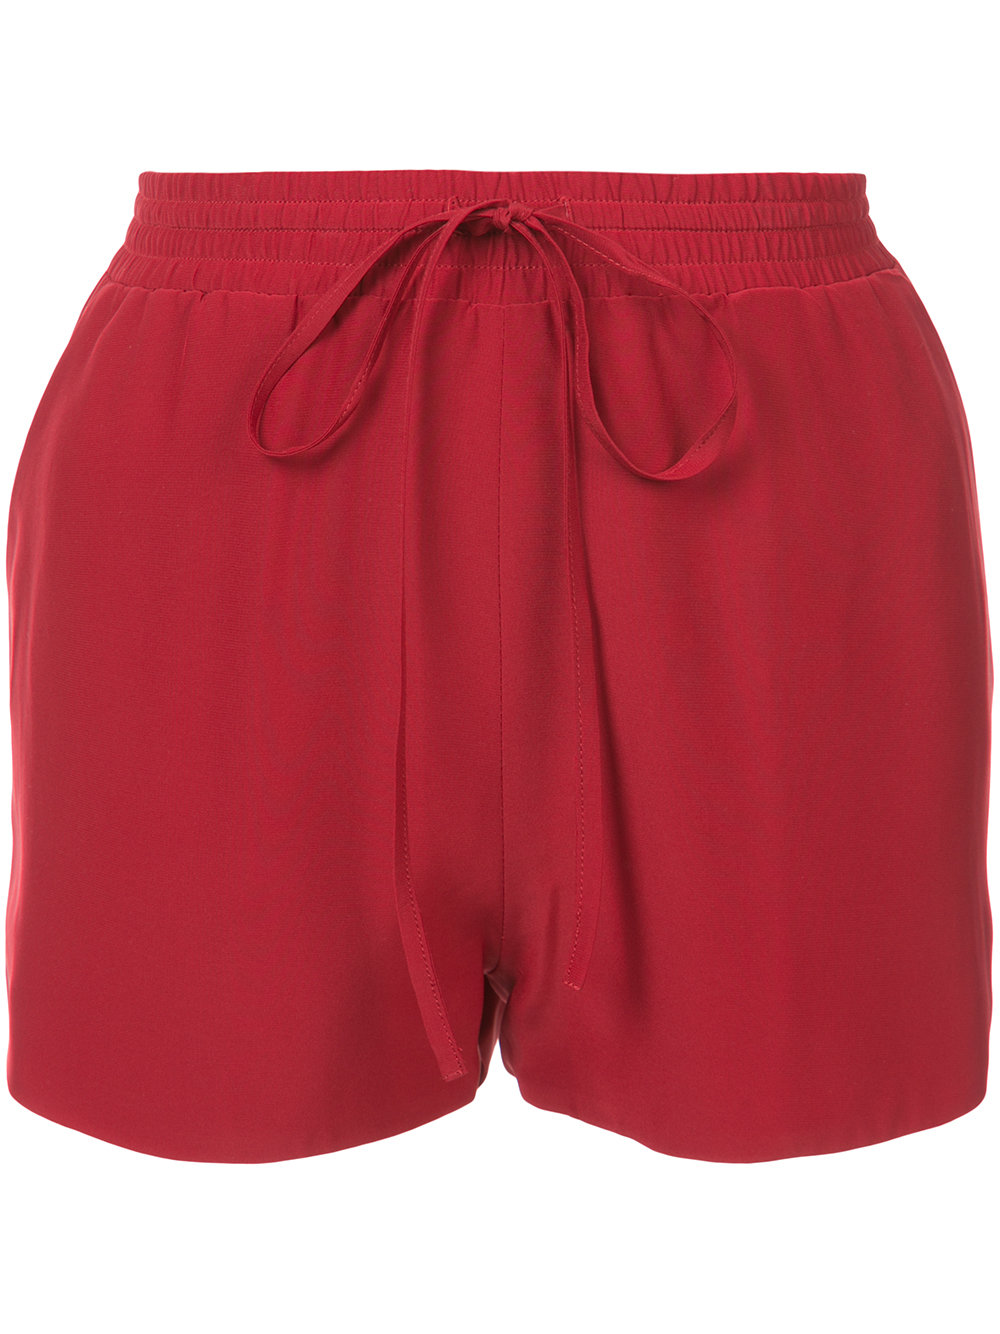 ROBERT RODRIGUEZ shorts $285